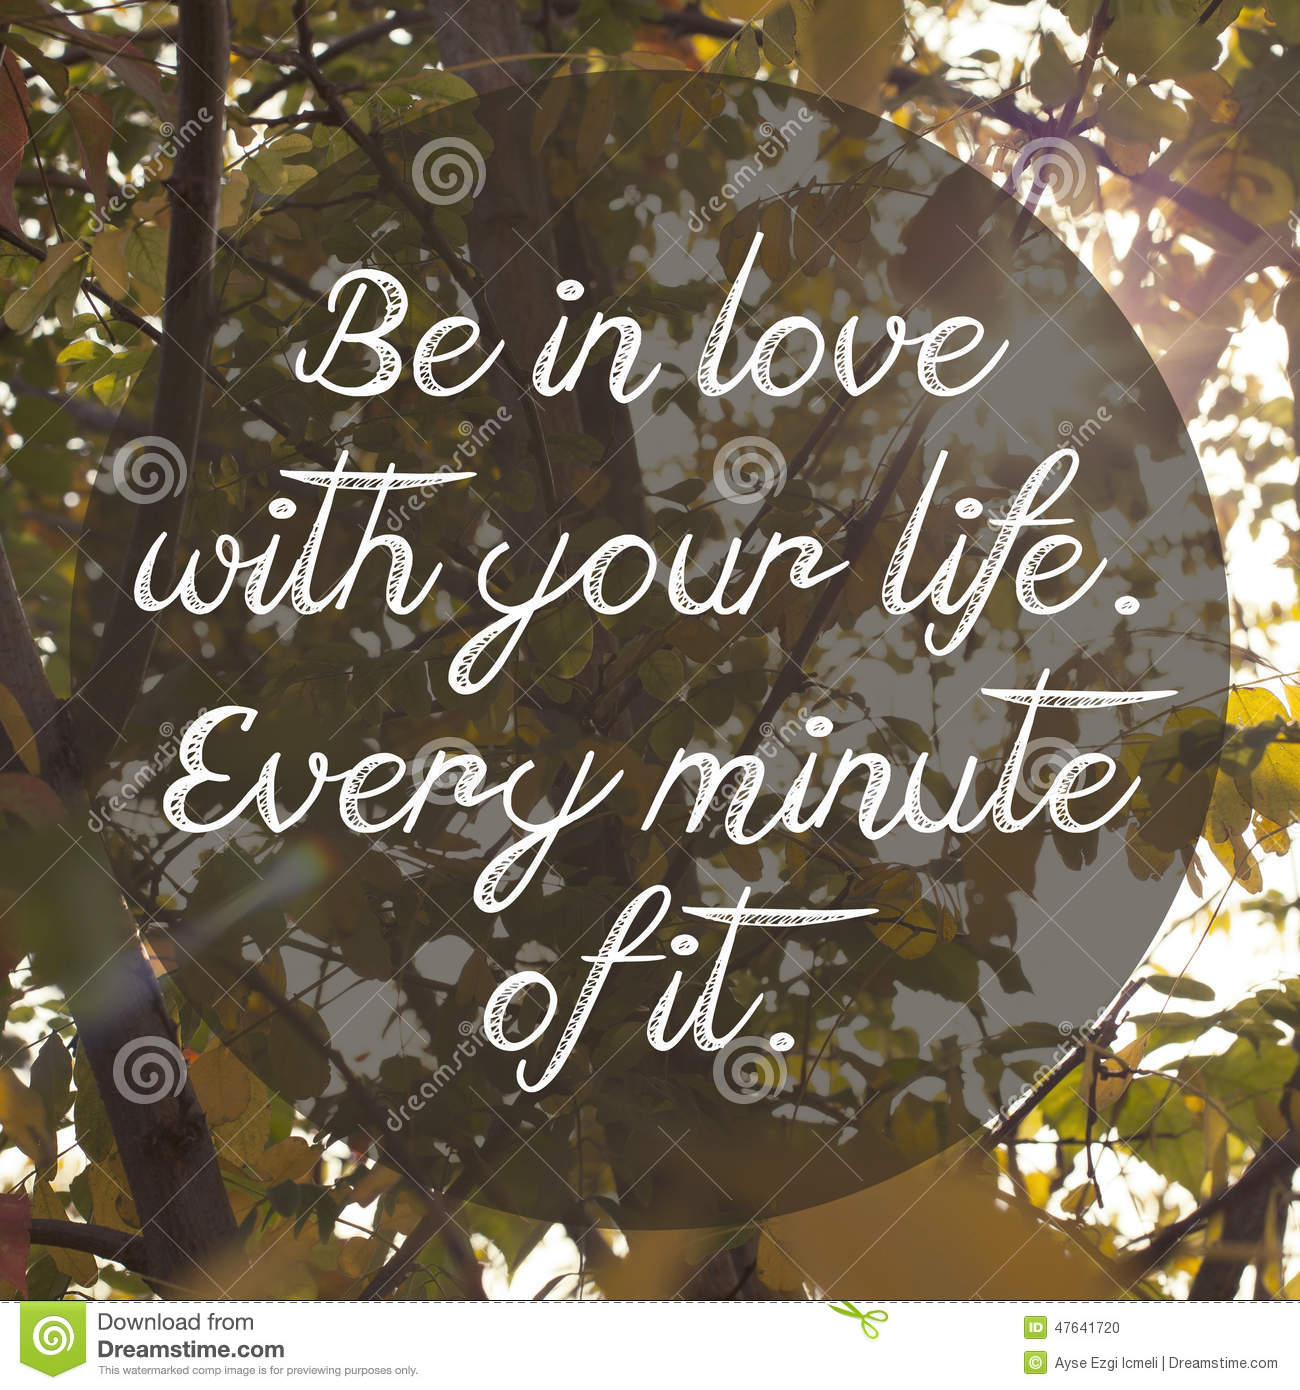 Inspirational Life Quote Design Poster Stock Photo - Image ...